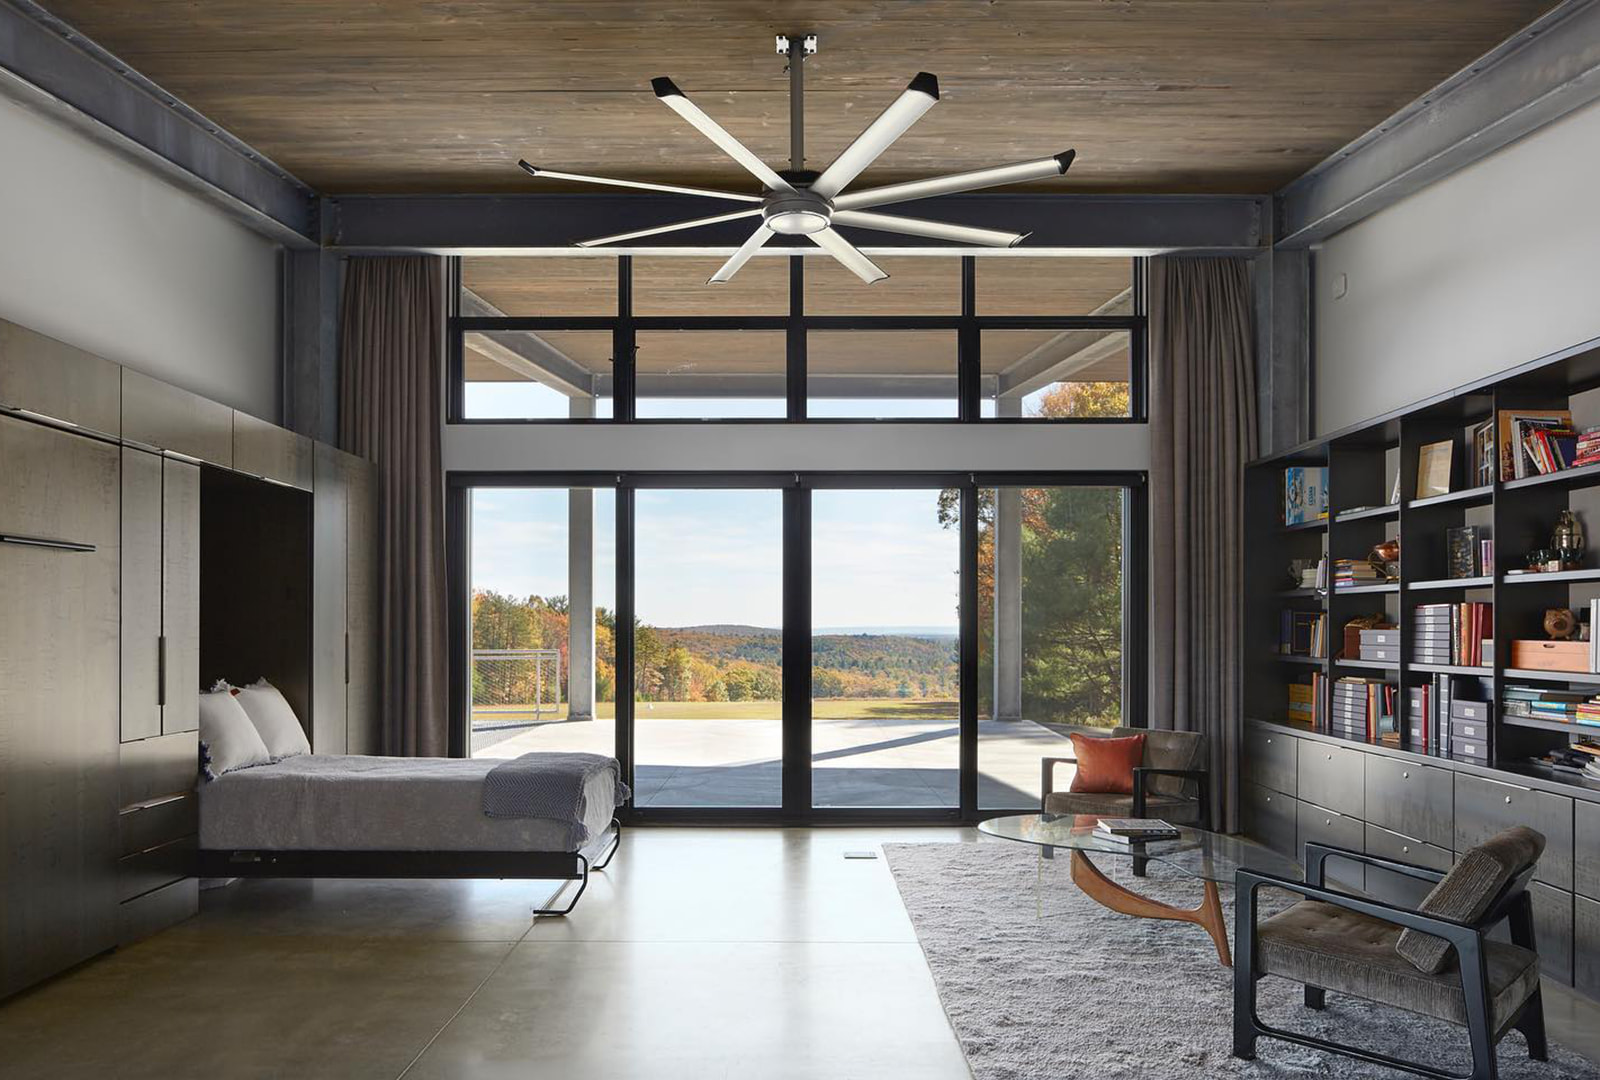 Modern contemporary bedroom has a wall with black sliding patio door and many black picture windows.